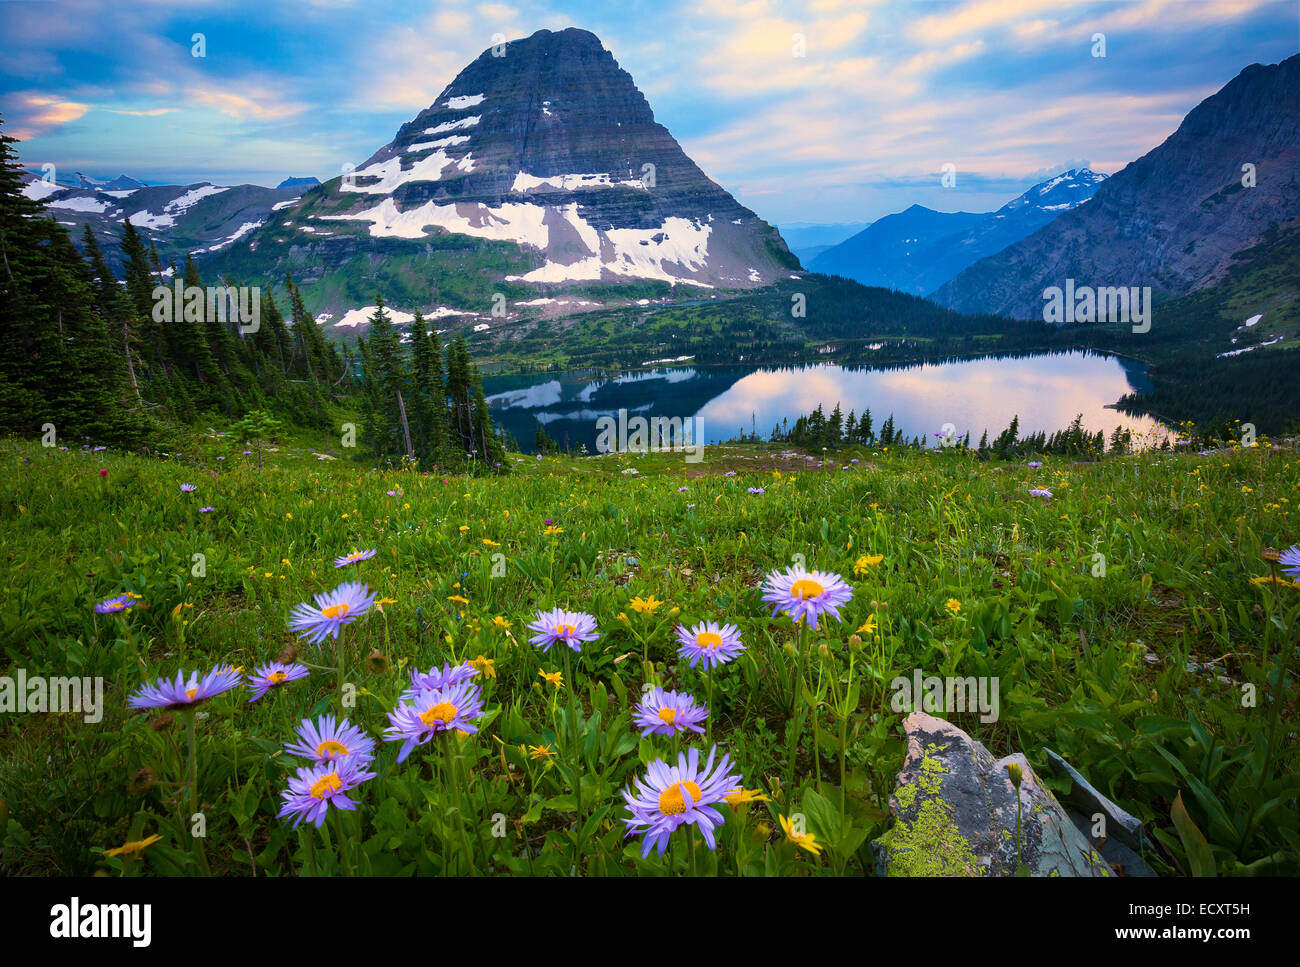 Hidden Lake is located in Glacier National Park, in the U. S. state of Montana. - Stock Image